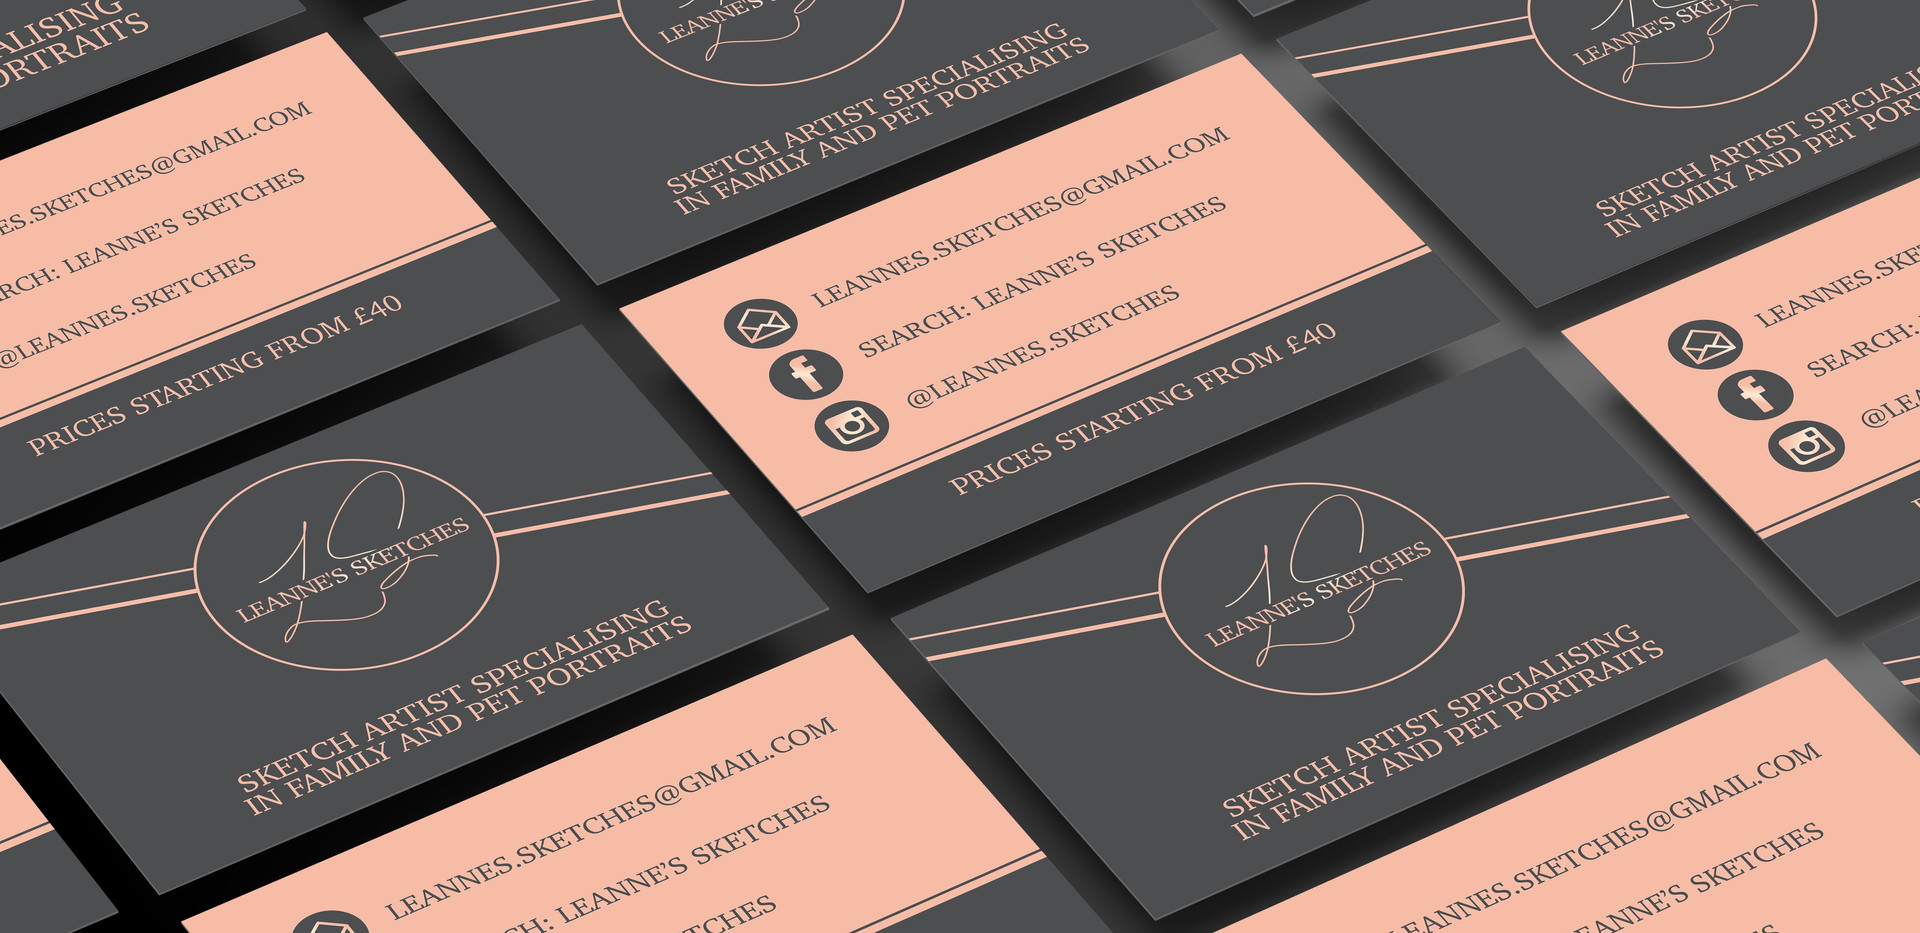 Leanne's Sketches Business Card Design